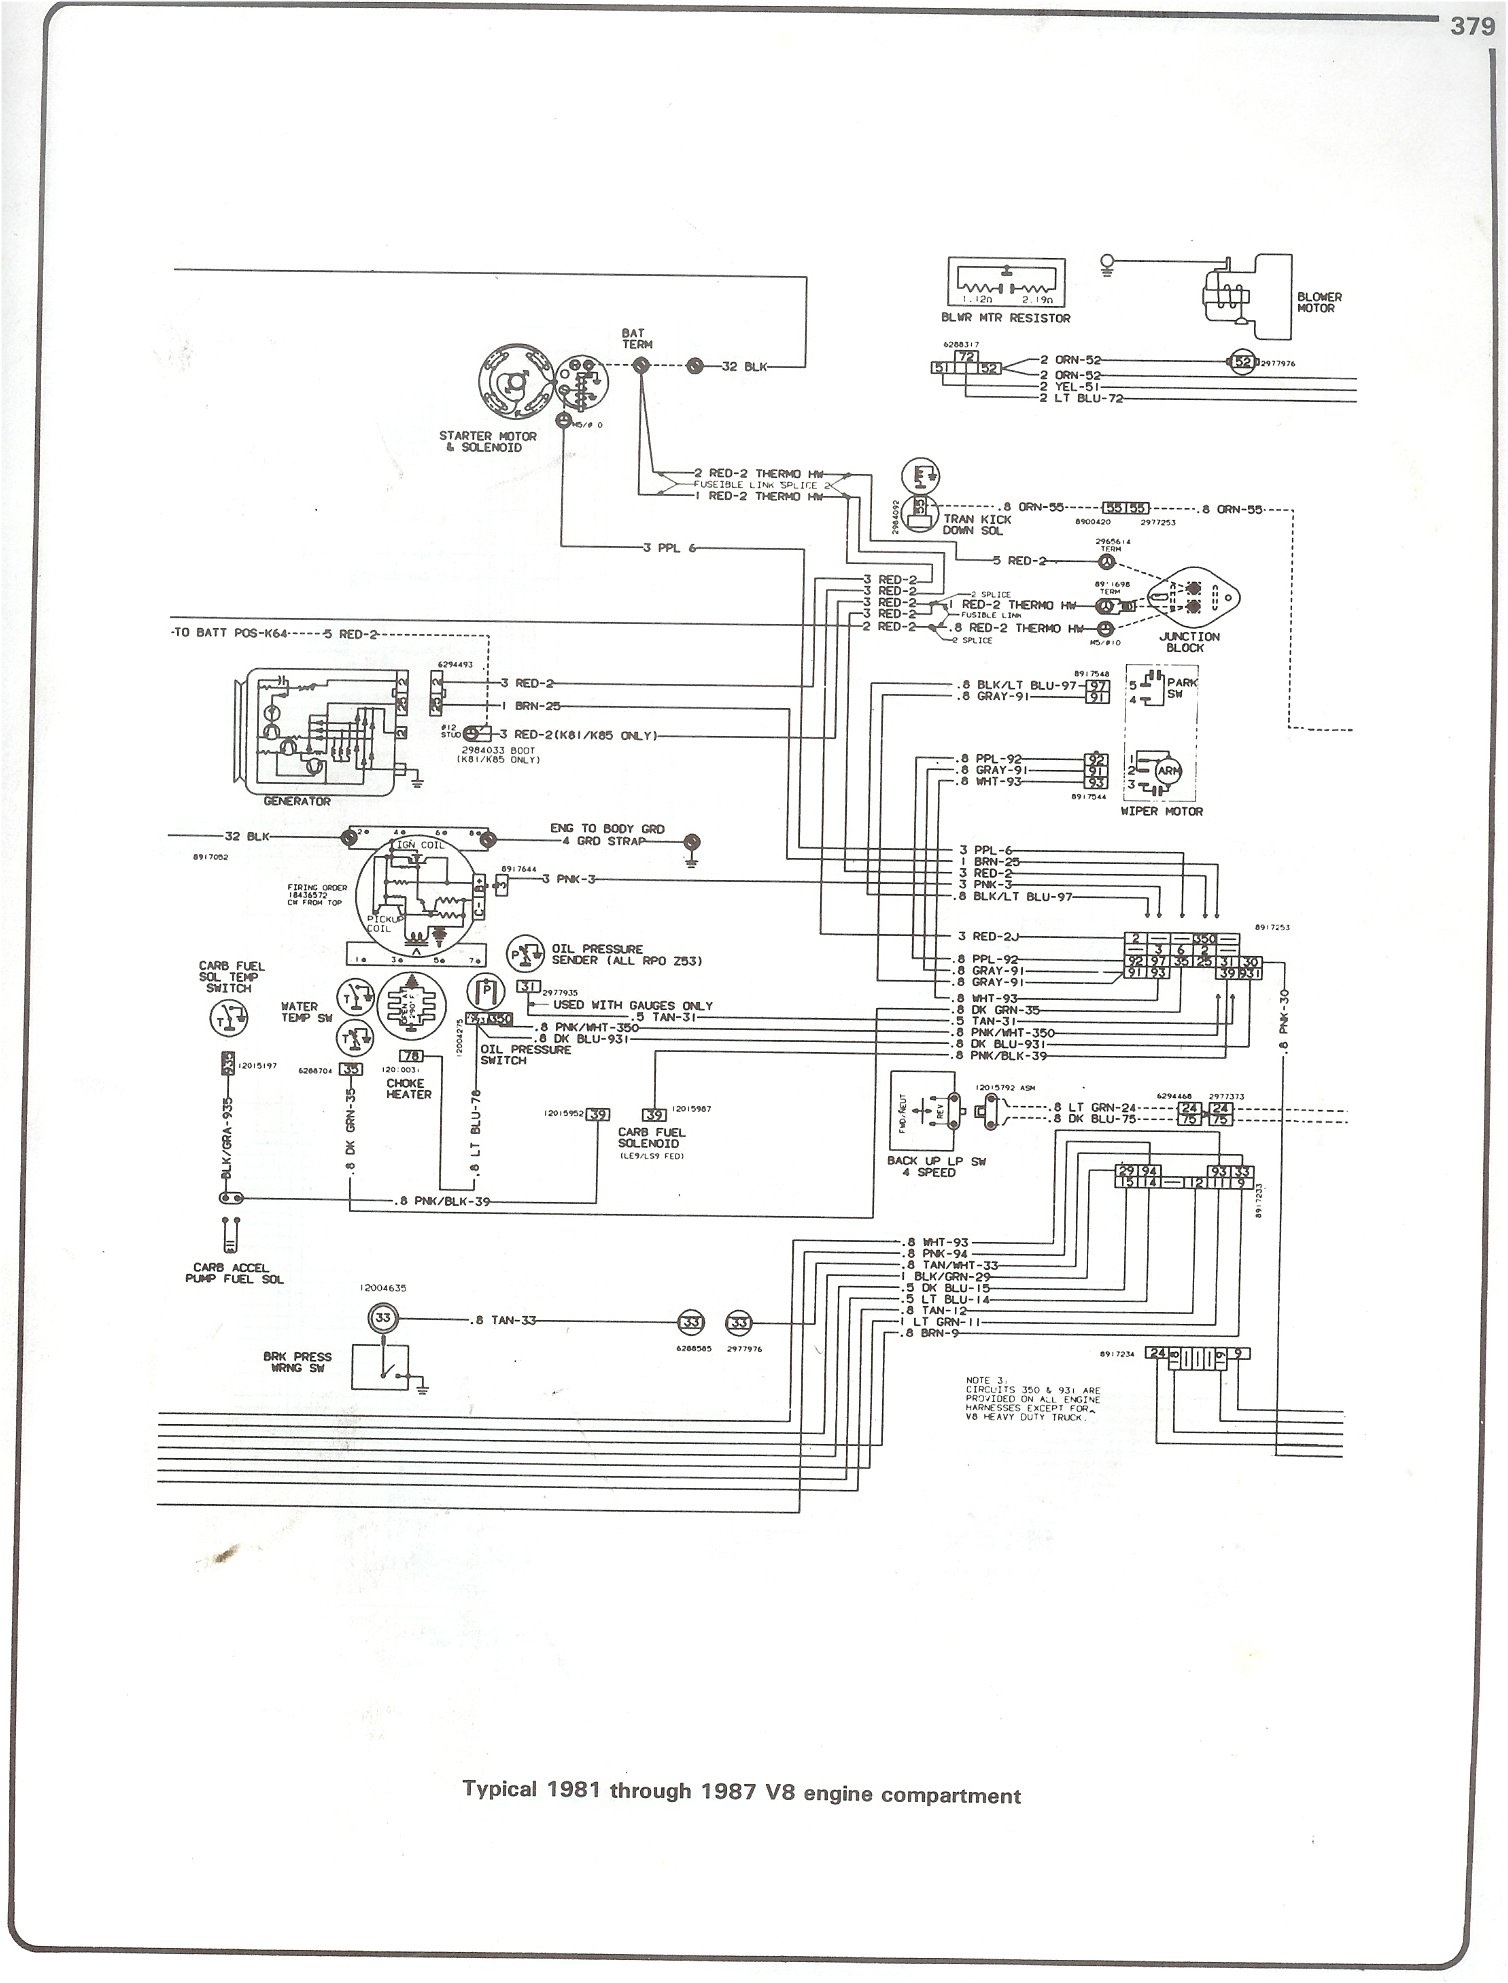 1987 chevy blazer radio wiring diagram